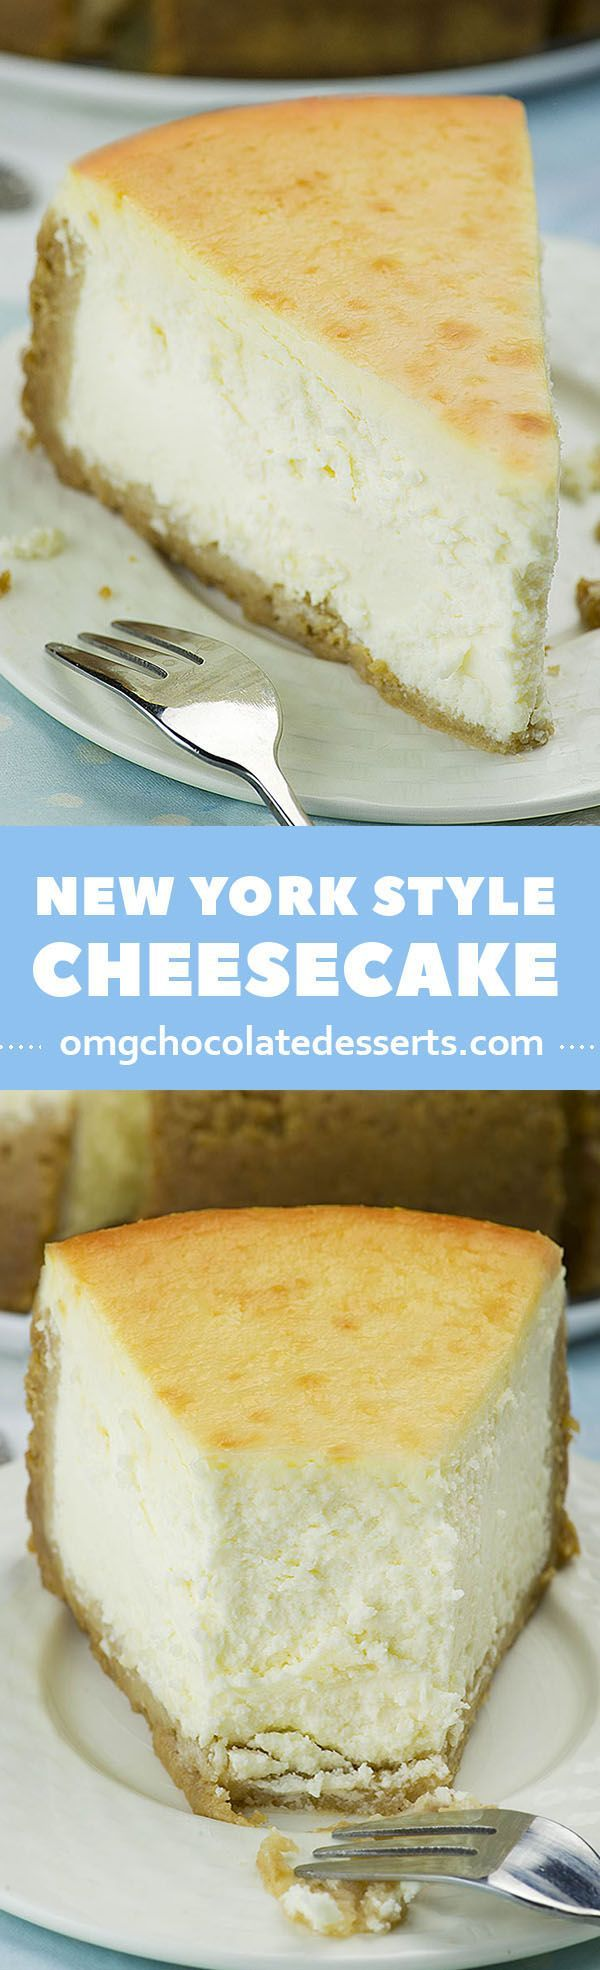 Looking for the best and easy recipe for a classic, melt-in your-mouth New York Style Cheesecake? Rich and dense, but creamy and smooth at the same time, this cheesecake is absolutely delicious!